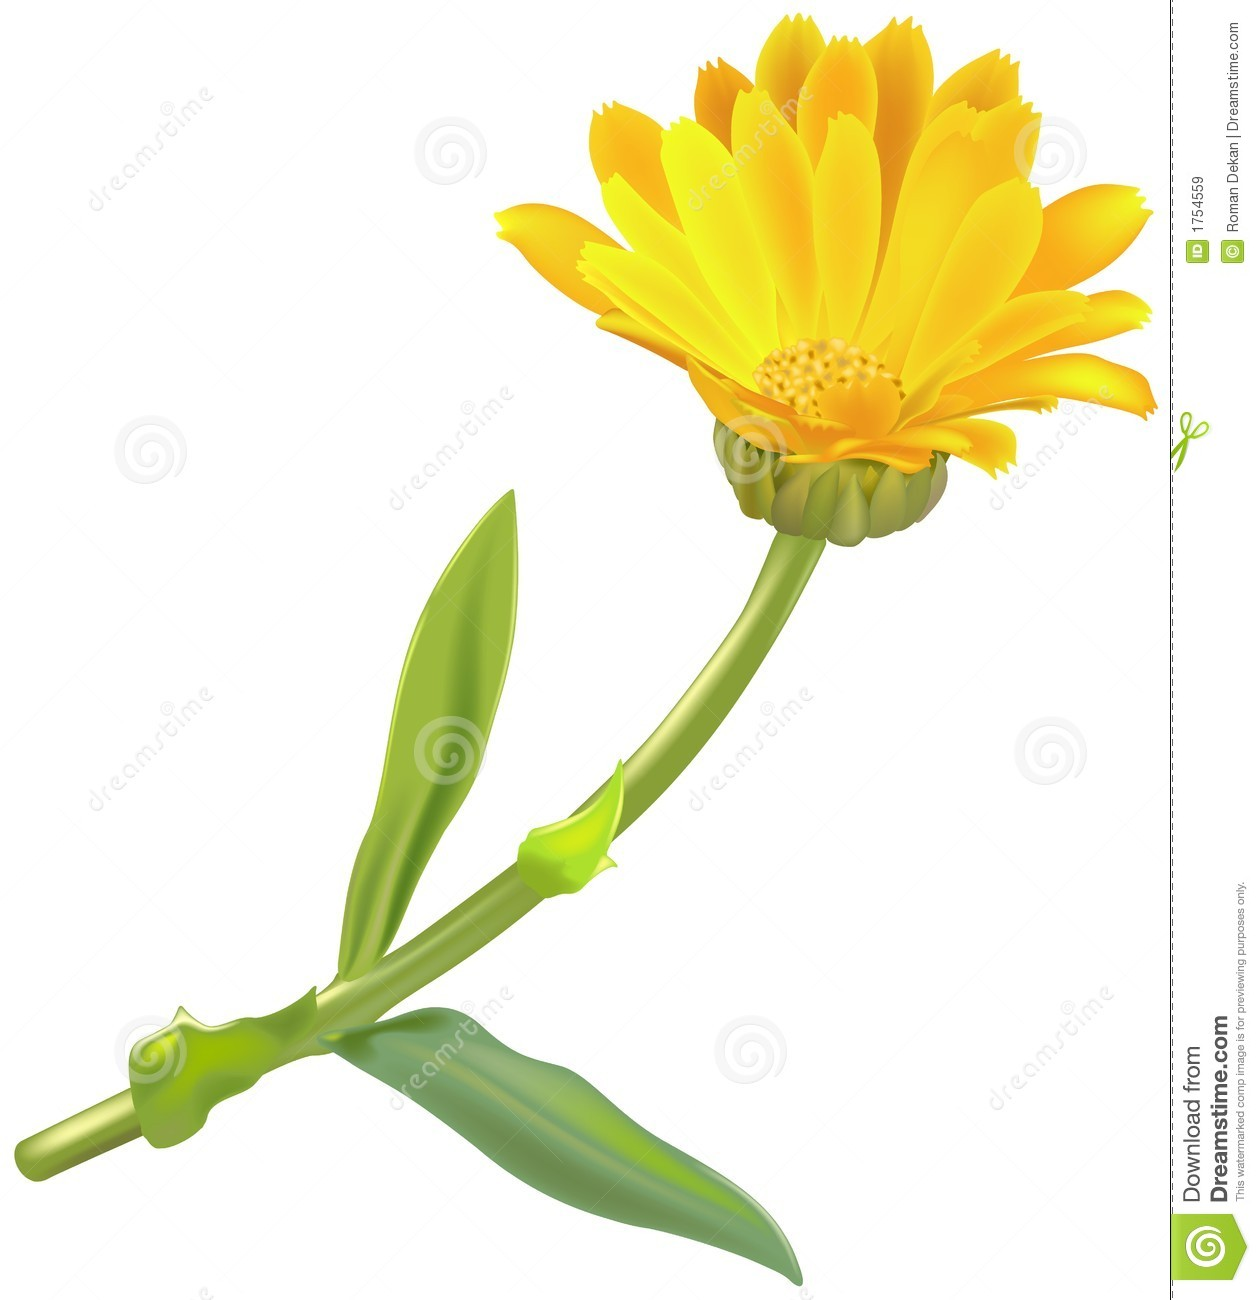 Marigold clipart #6, Download drawings